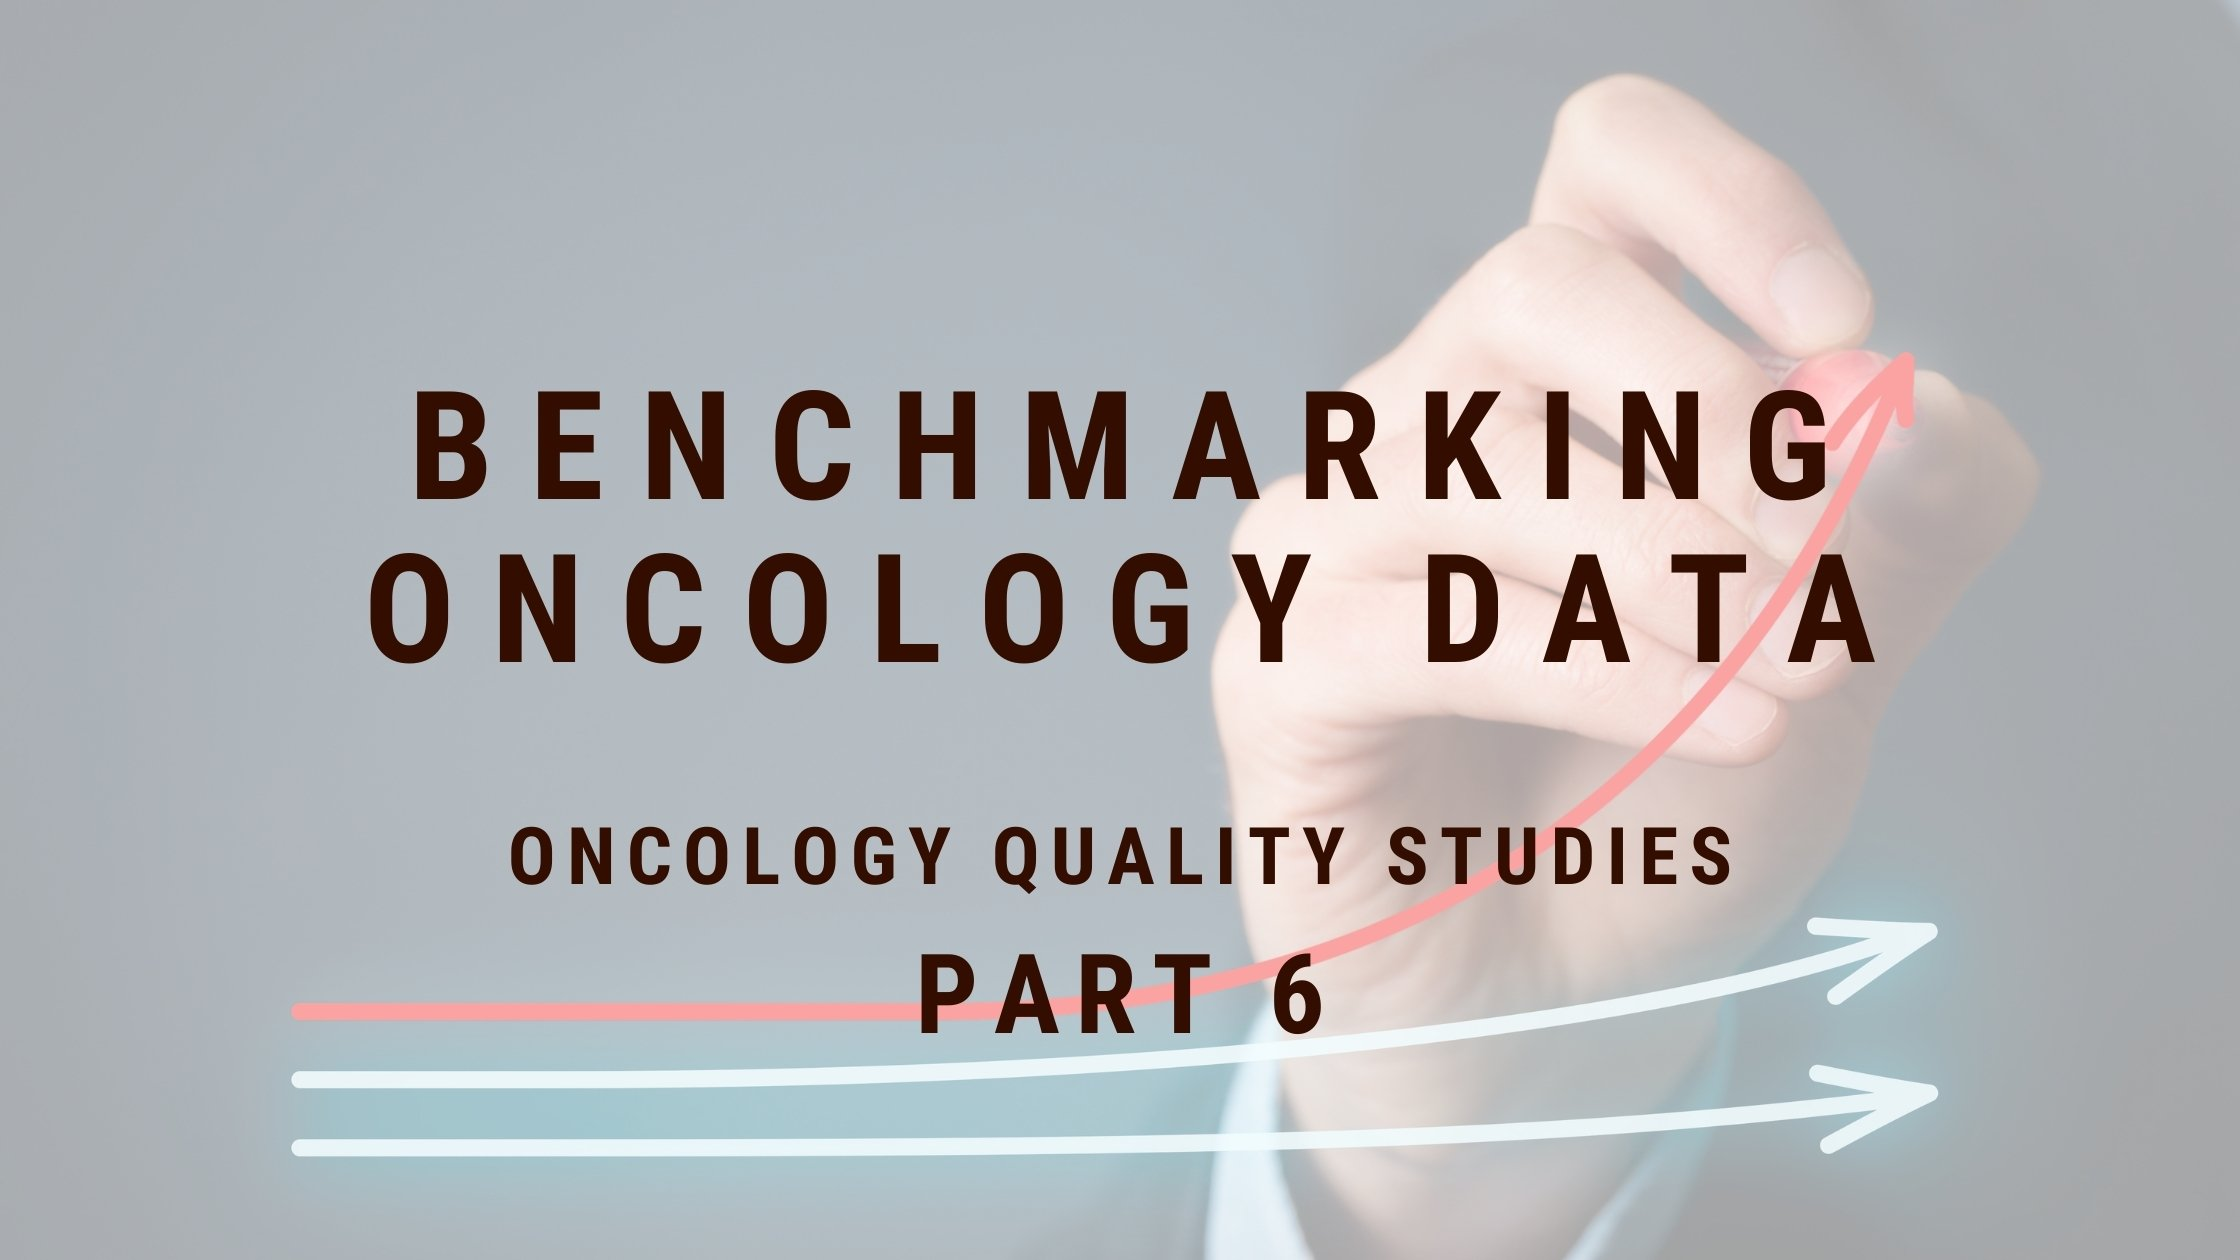 Oncology Quality Studies: Benchmarking Oncology Data